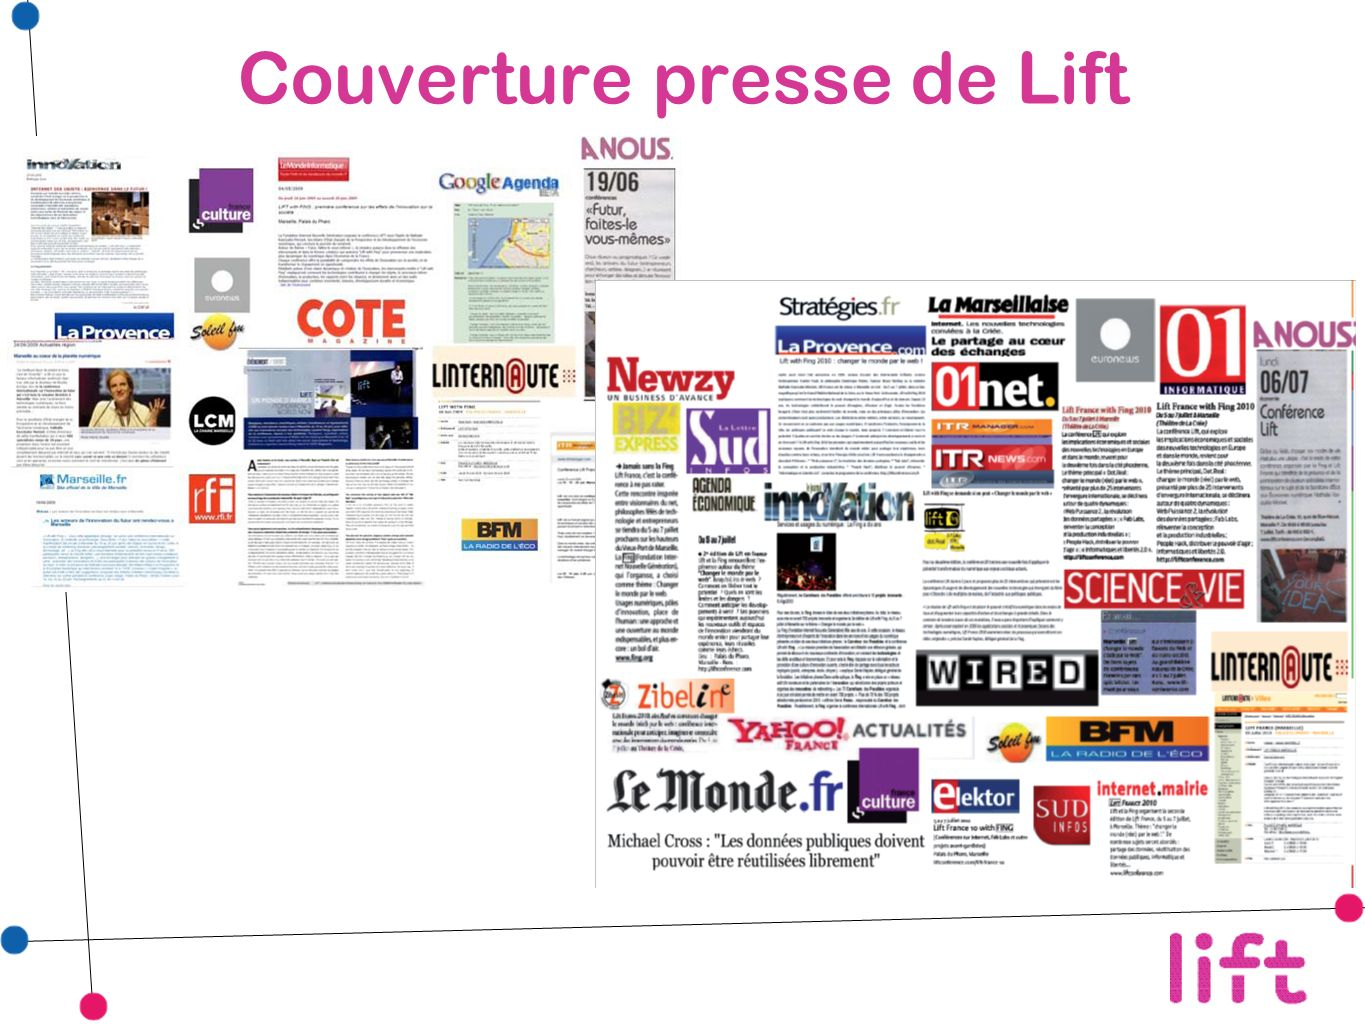 Couverture presse de Lift